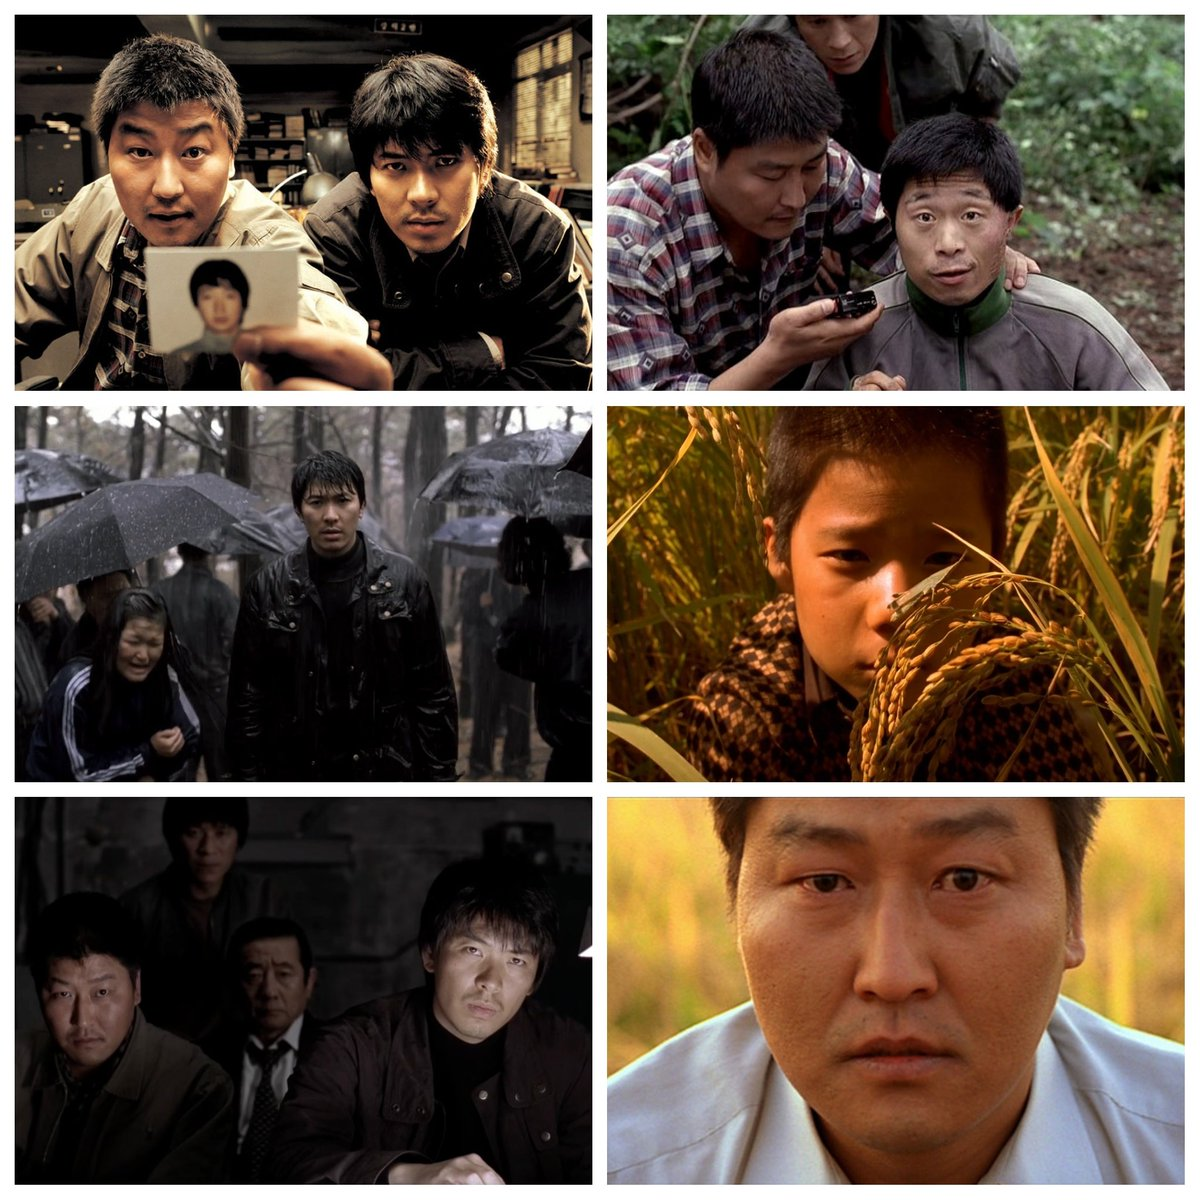 """CinemaGrids on Twitter: """"In MEMORIES OF MURDER (2003), actors look at the  camera repeatedly, including in the film's final frame (bottom right).  Director Bong Joon-ho did this to communicate to the real"""